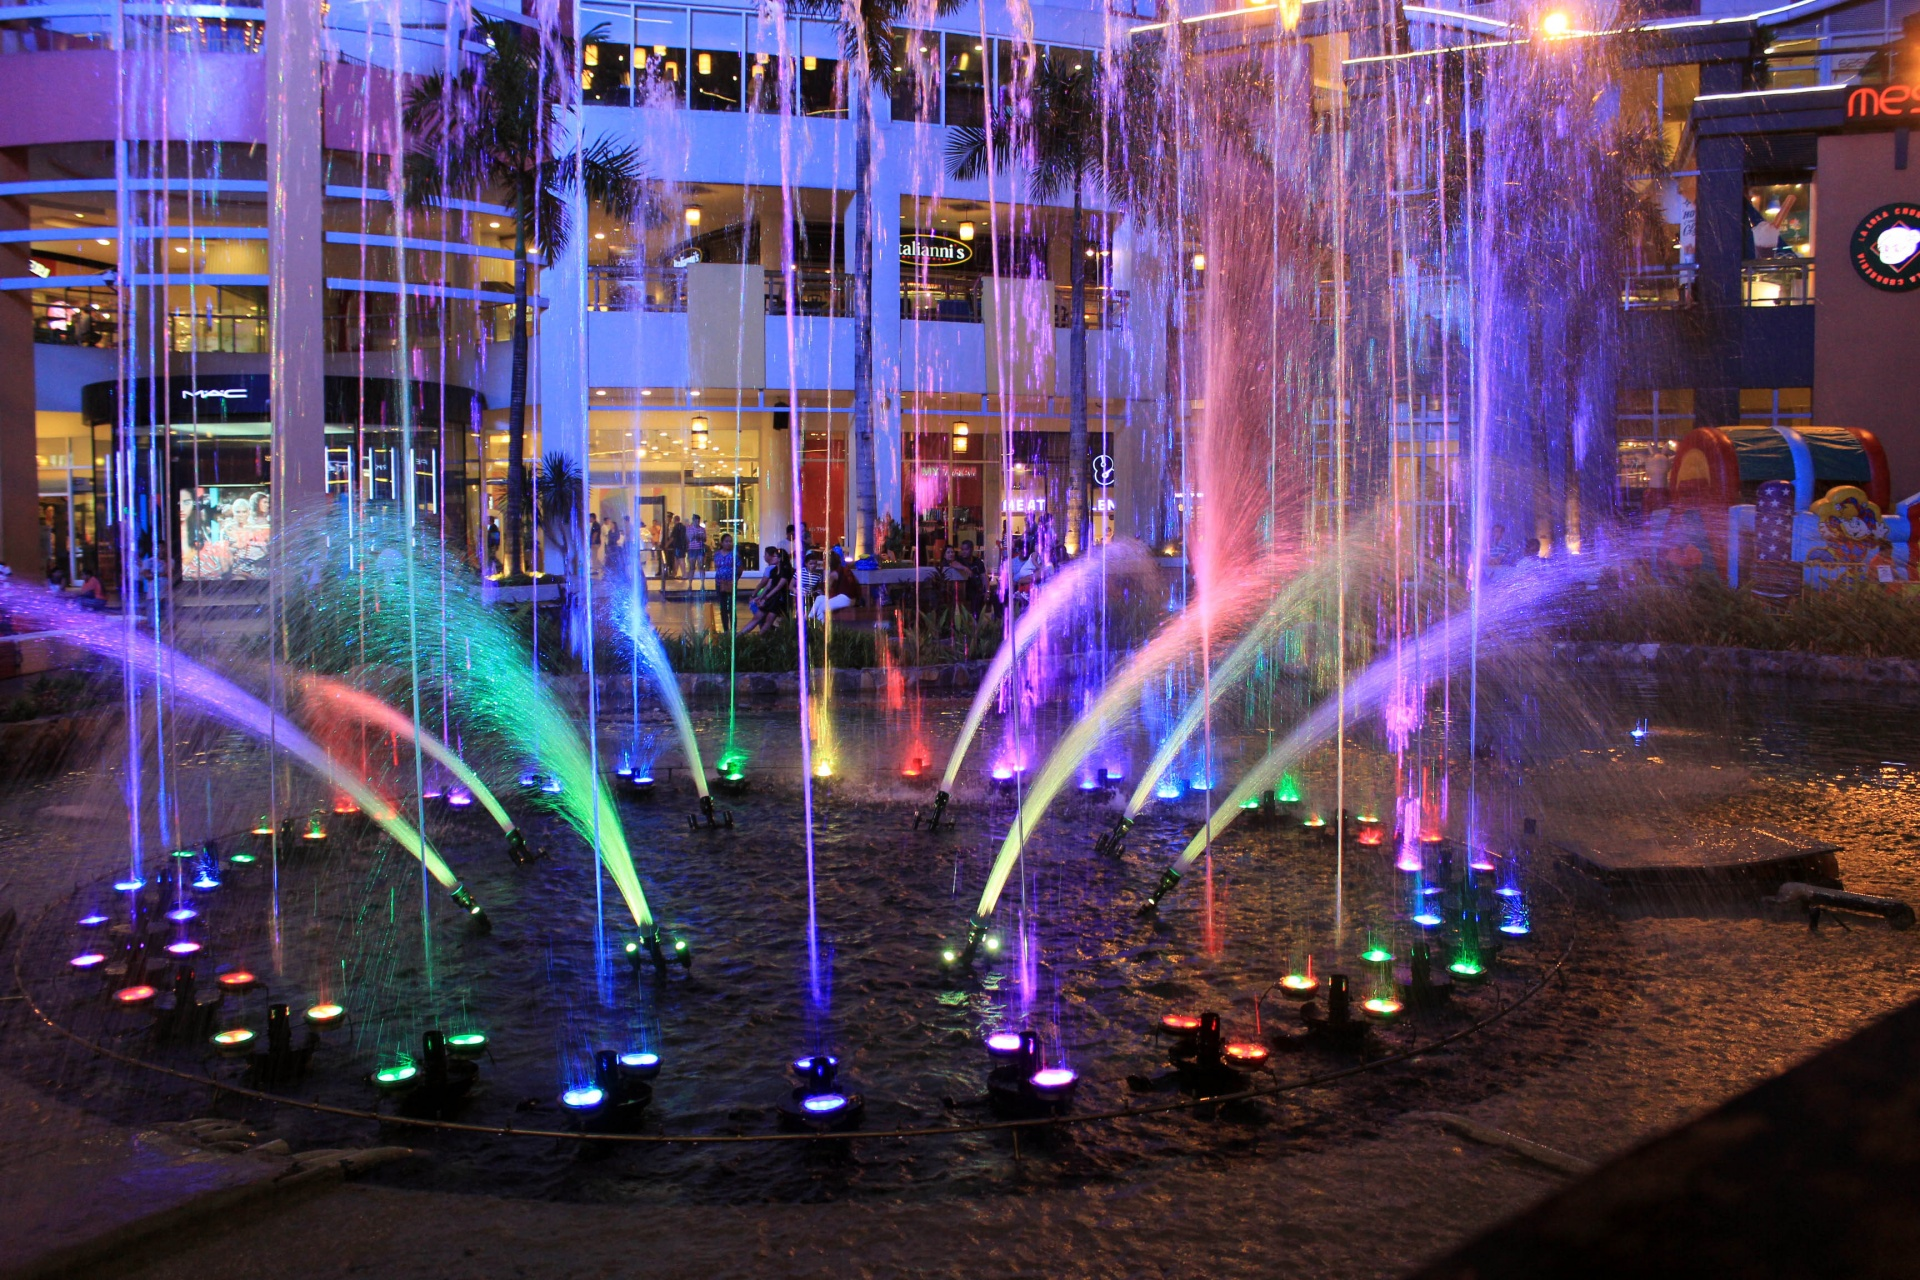 water fountain, water colors, colorful water fountain